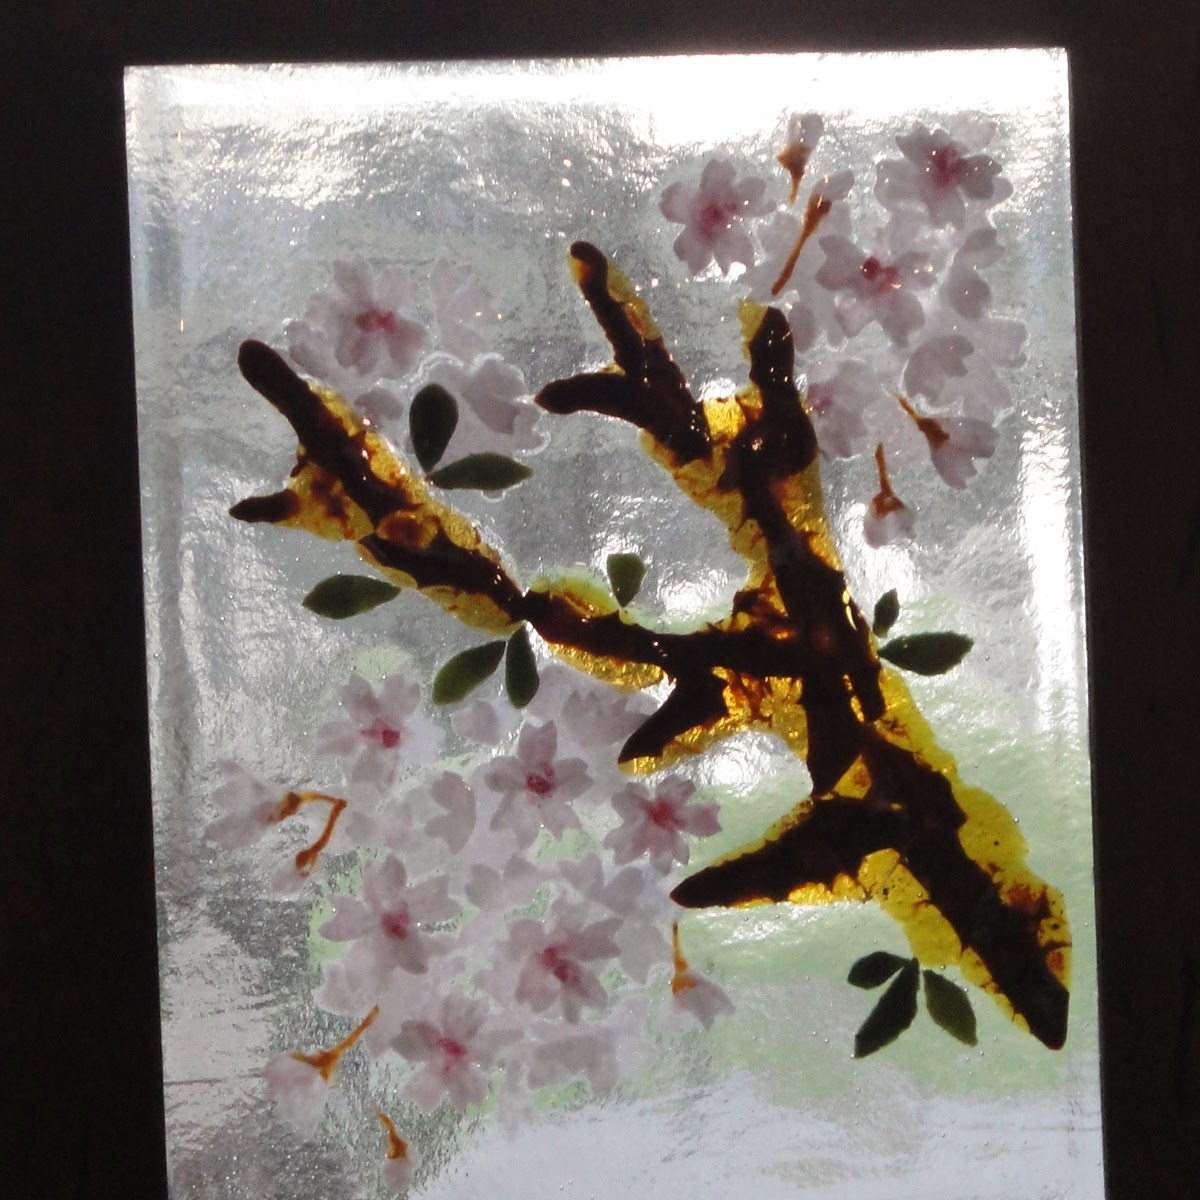 fused stained glass sakura cherry blossom bloom flower flowers petals pink blooms on window flutterbyfoto flutterbybutterfly